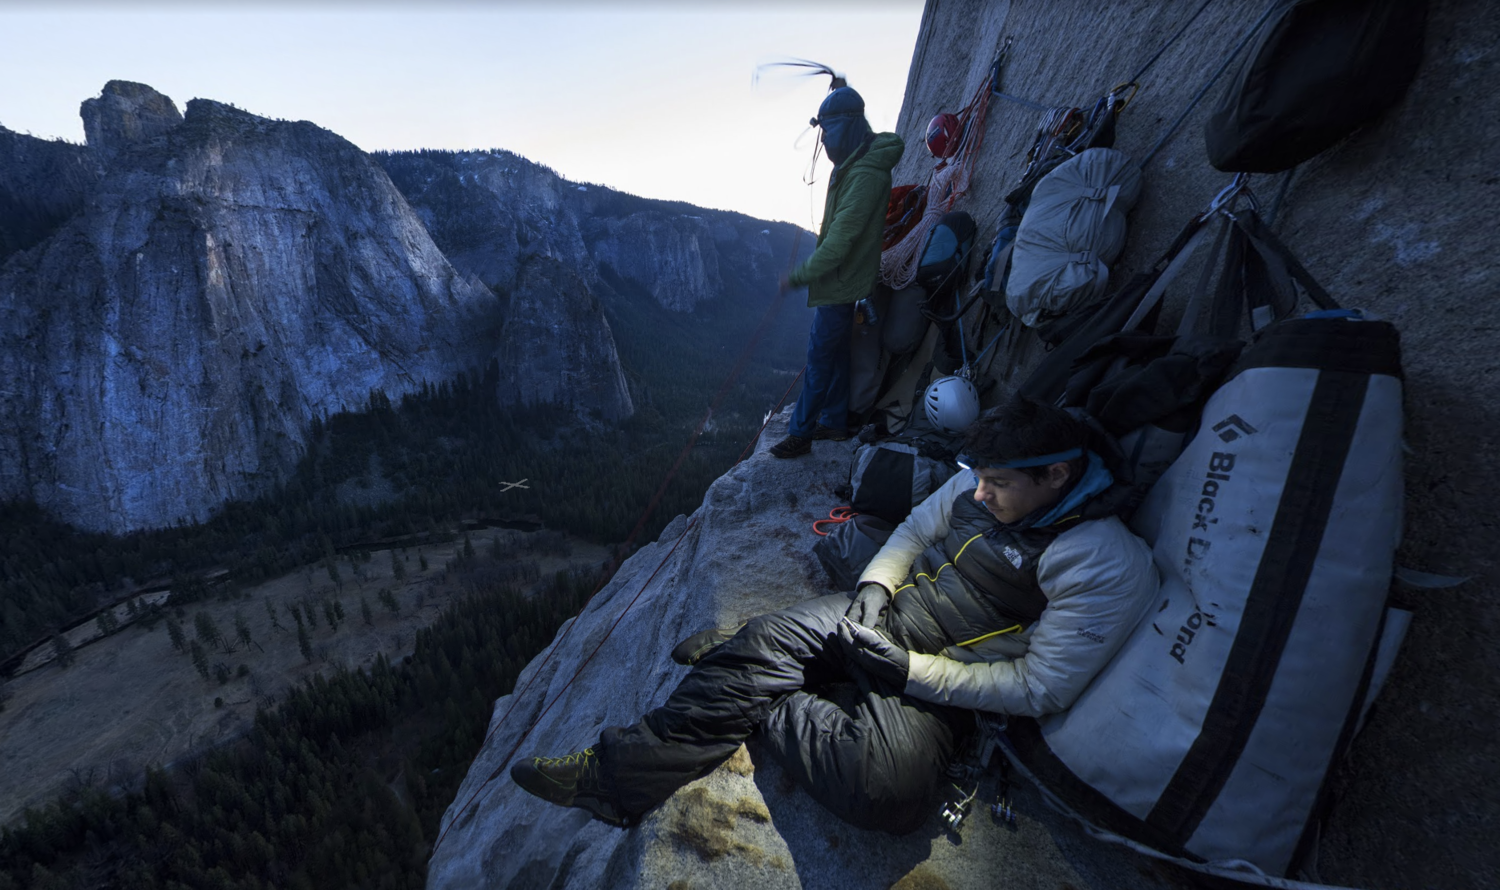 El Cap at Night  About halfway up the 3,000 foot route, El Cap Tower makes a comfortable ledge to stop for the night for Alex Honnold, Lynn Hill, and Tommy Caldwell. See the Street View here.